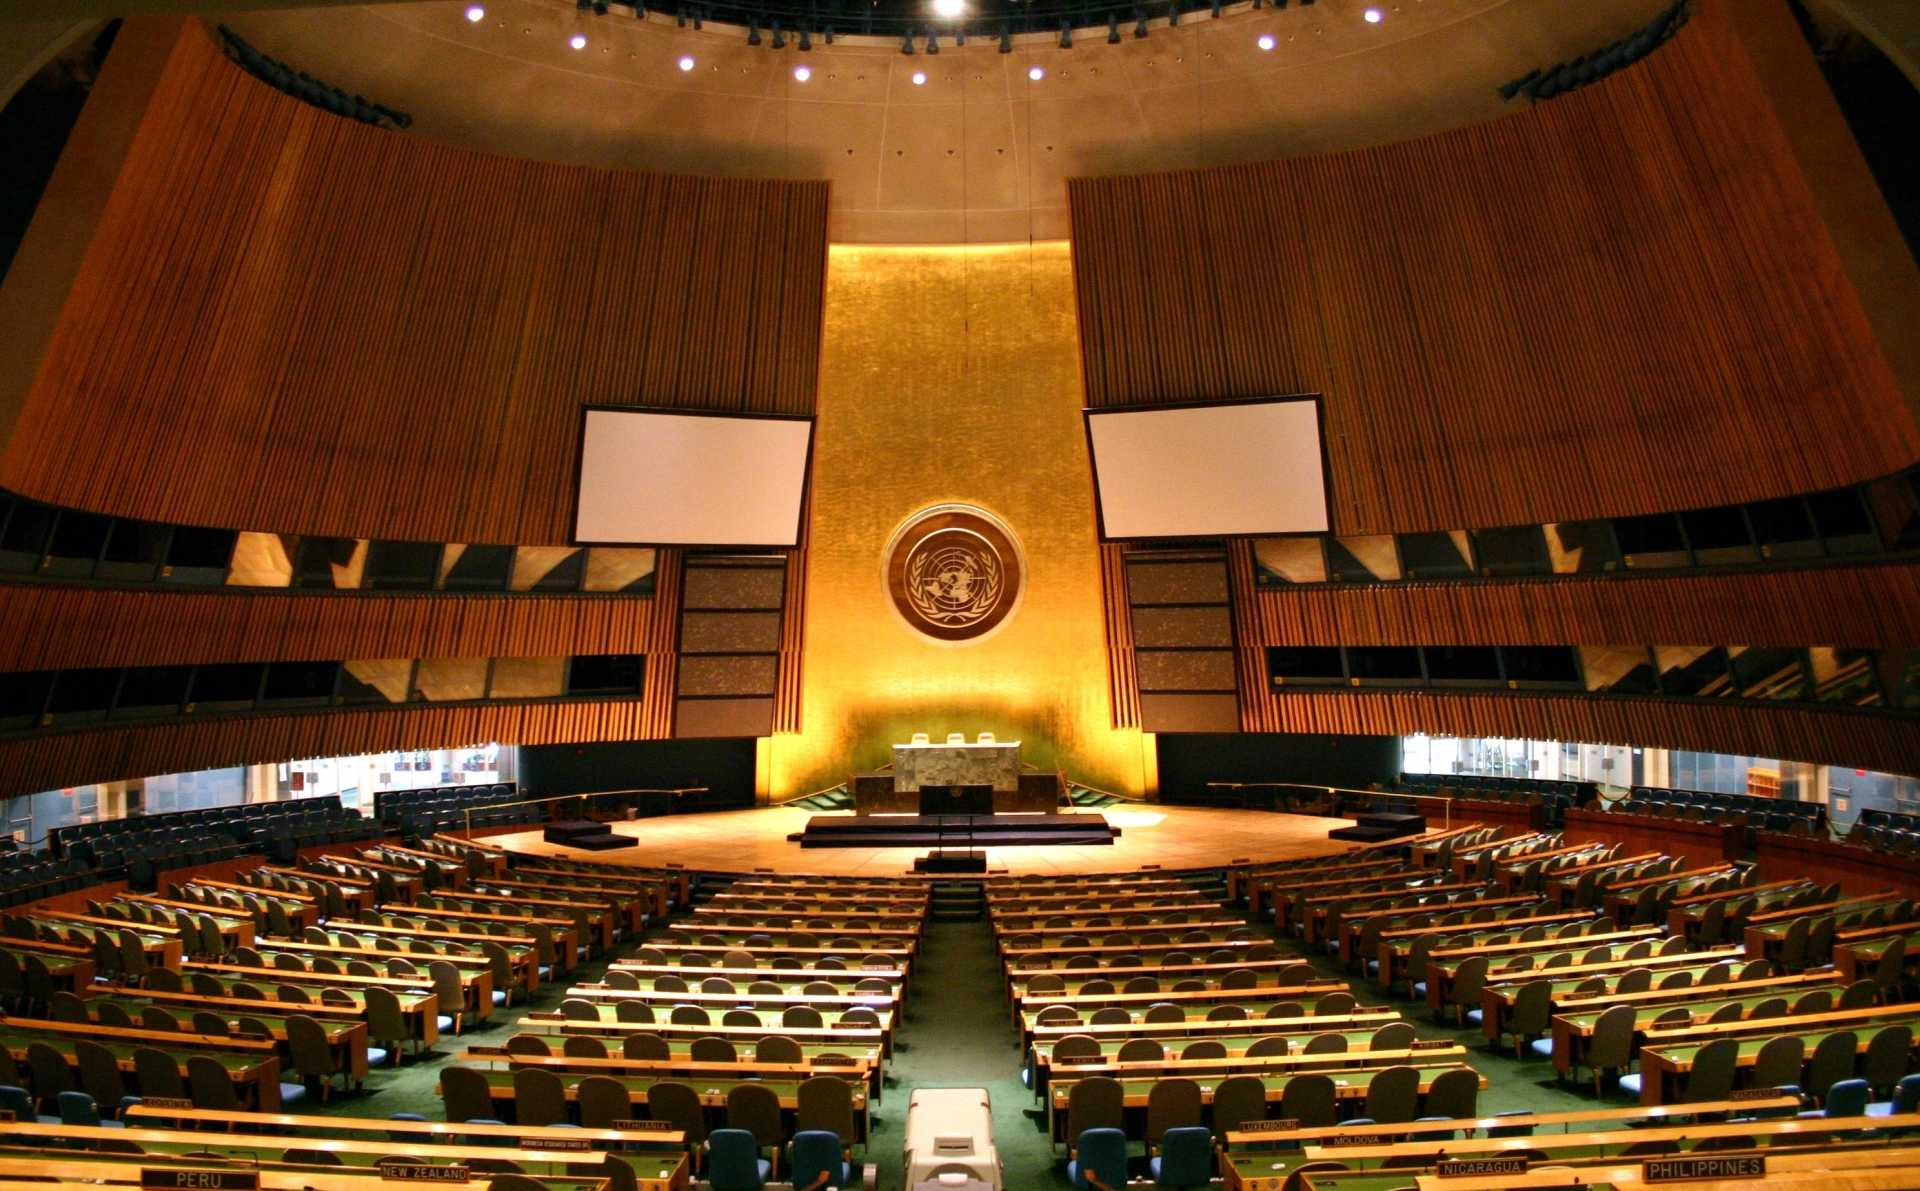 The United Nations General Assembly adopts the Arms Trade Treaty to regulate the international trade of conventional weapons.